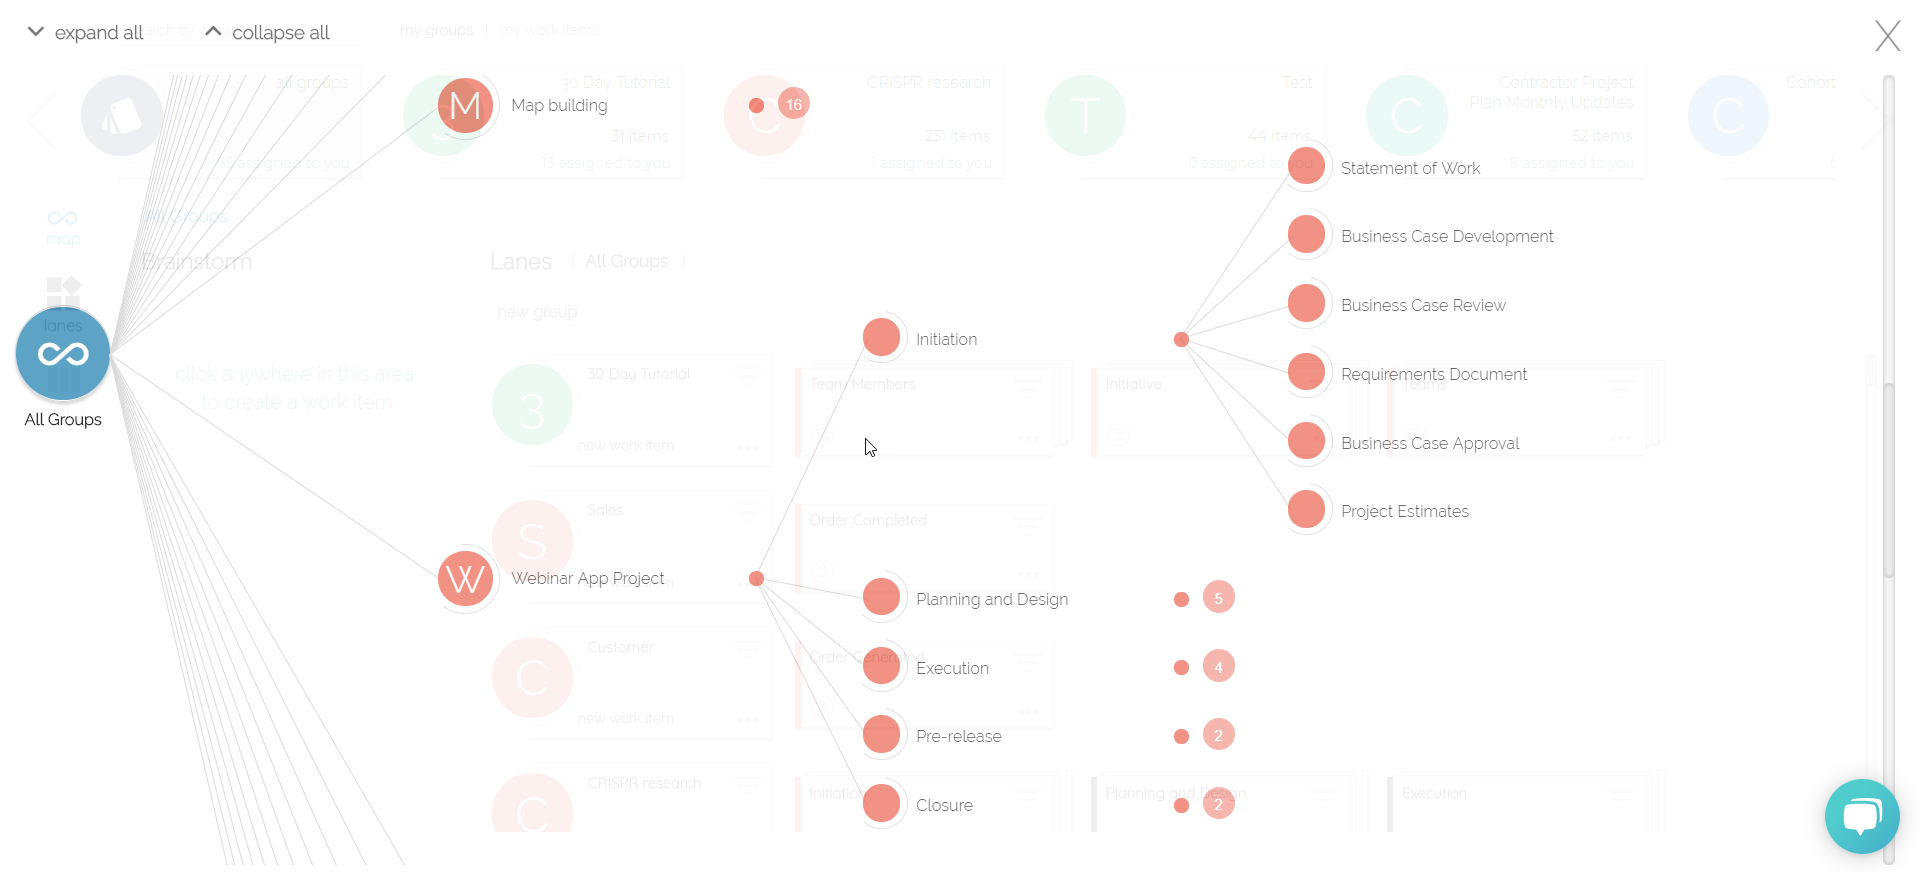 Visualize your work in a powerful map